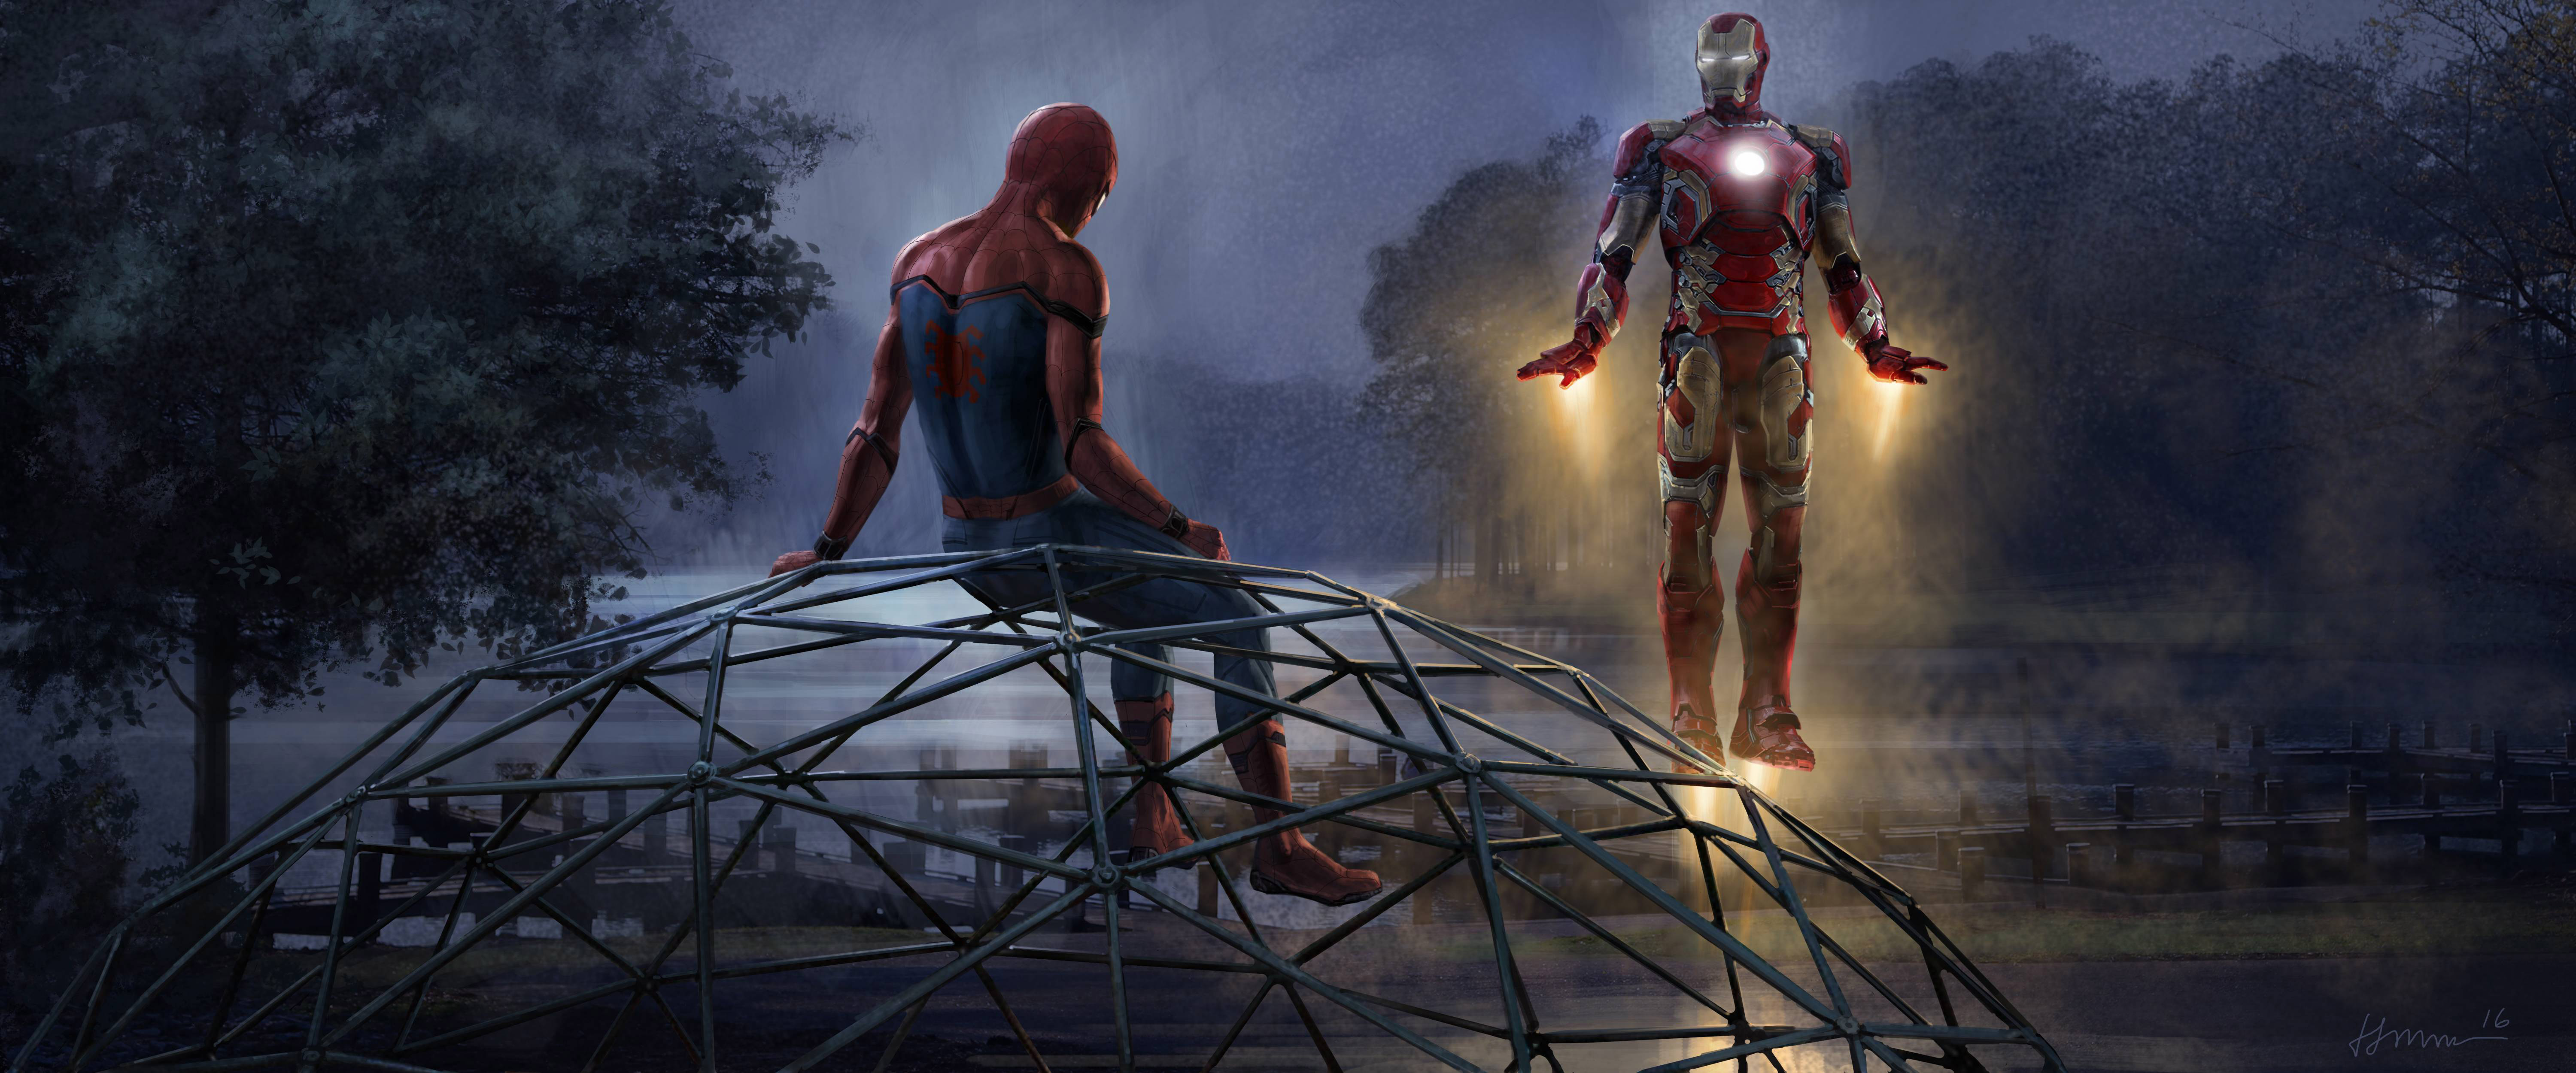 iron man and spiderman 5k artwork, hd movies, 4k wallpapers, images